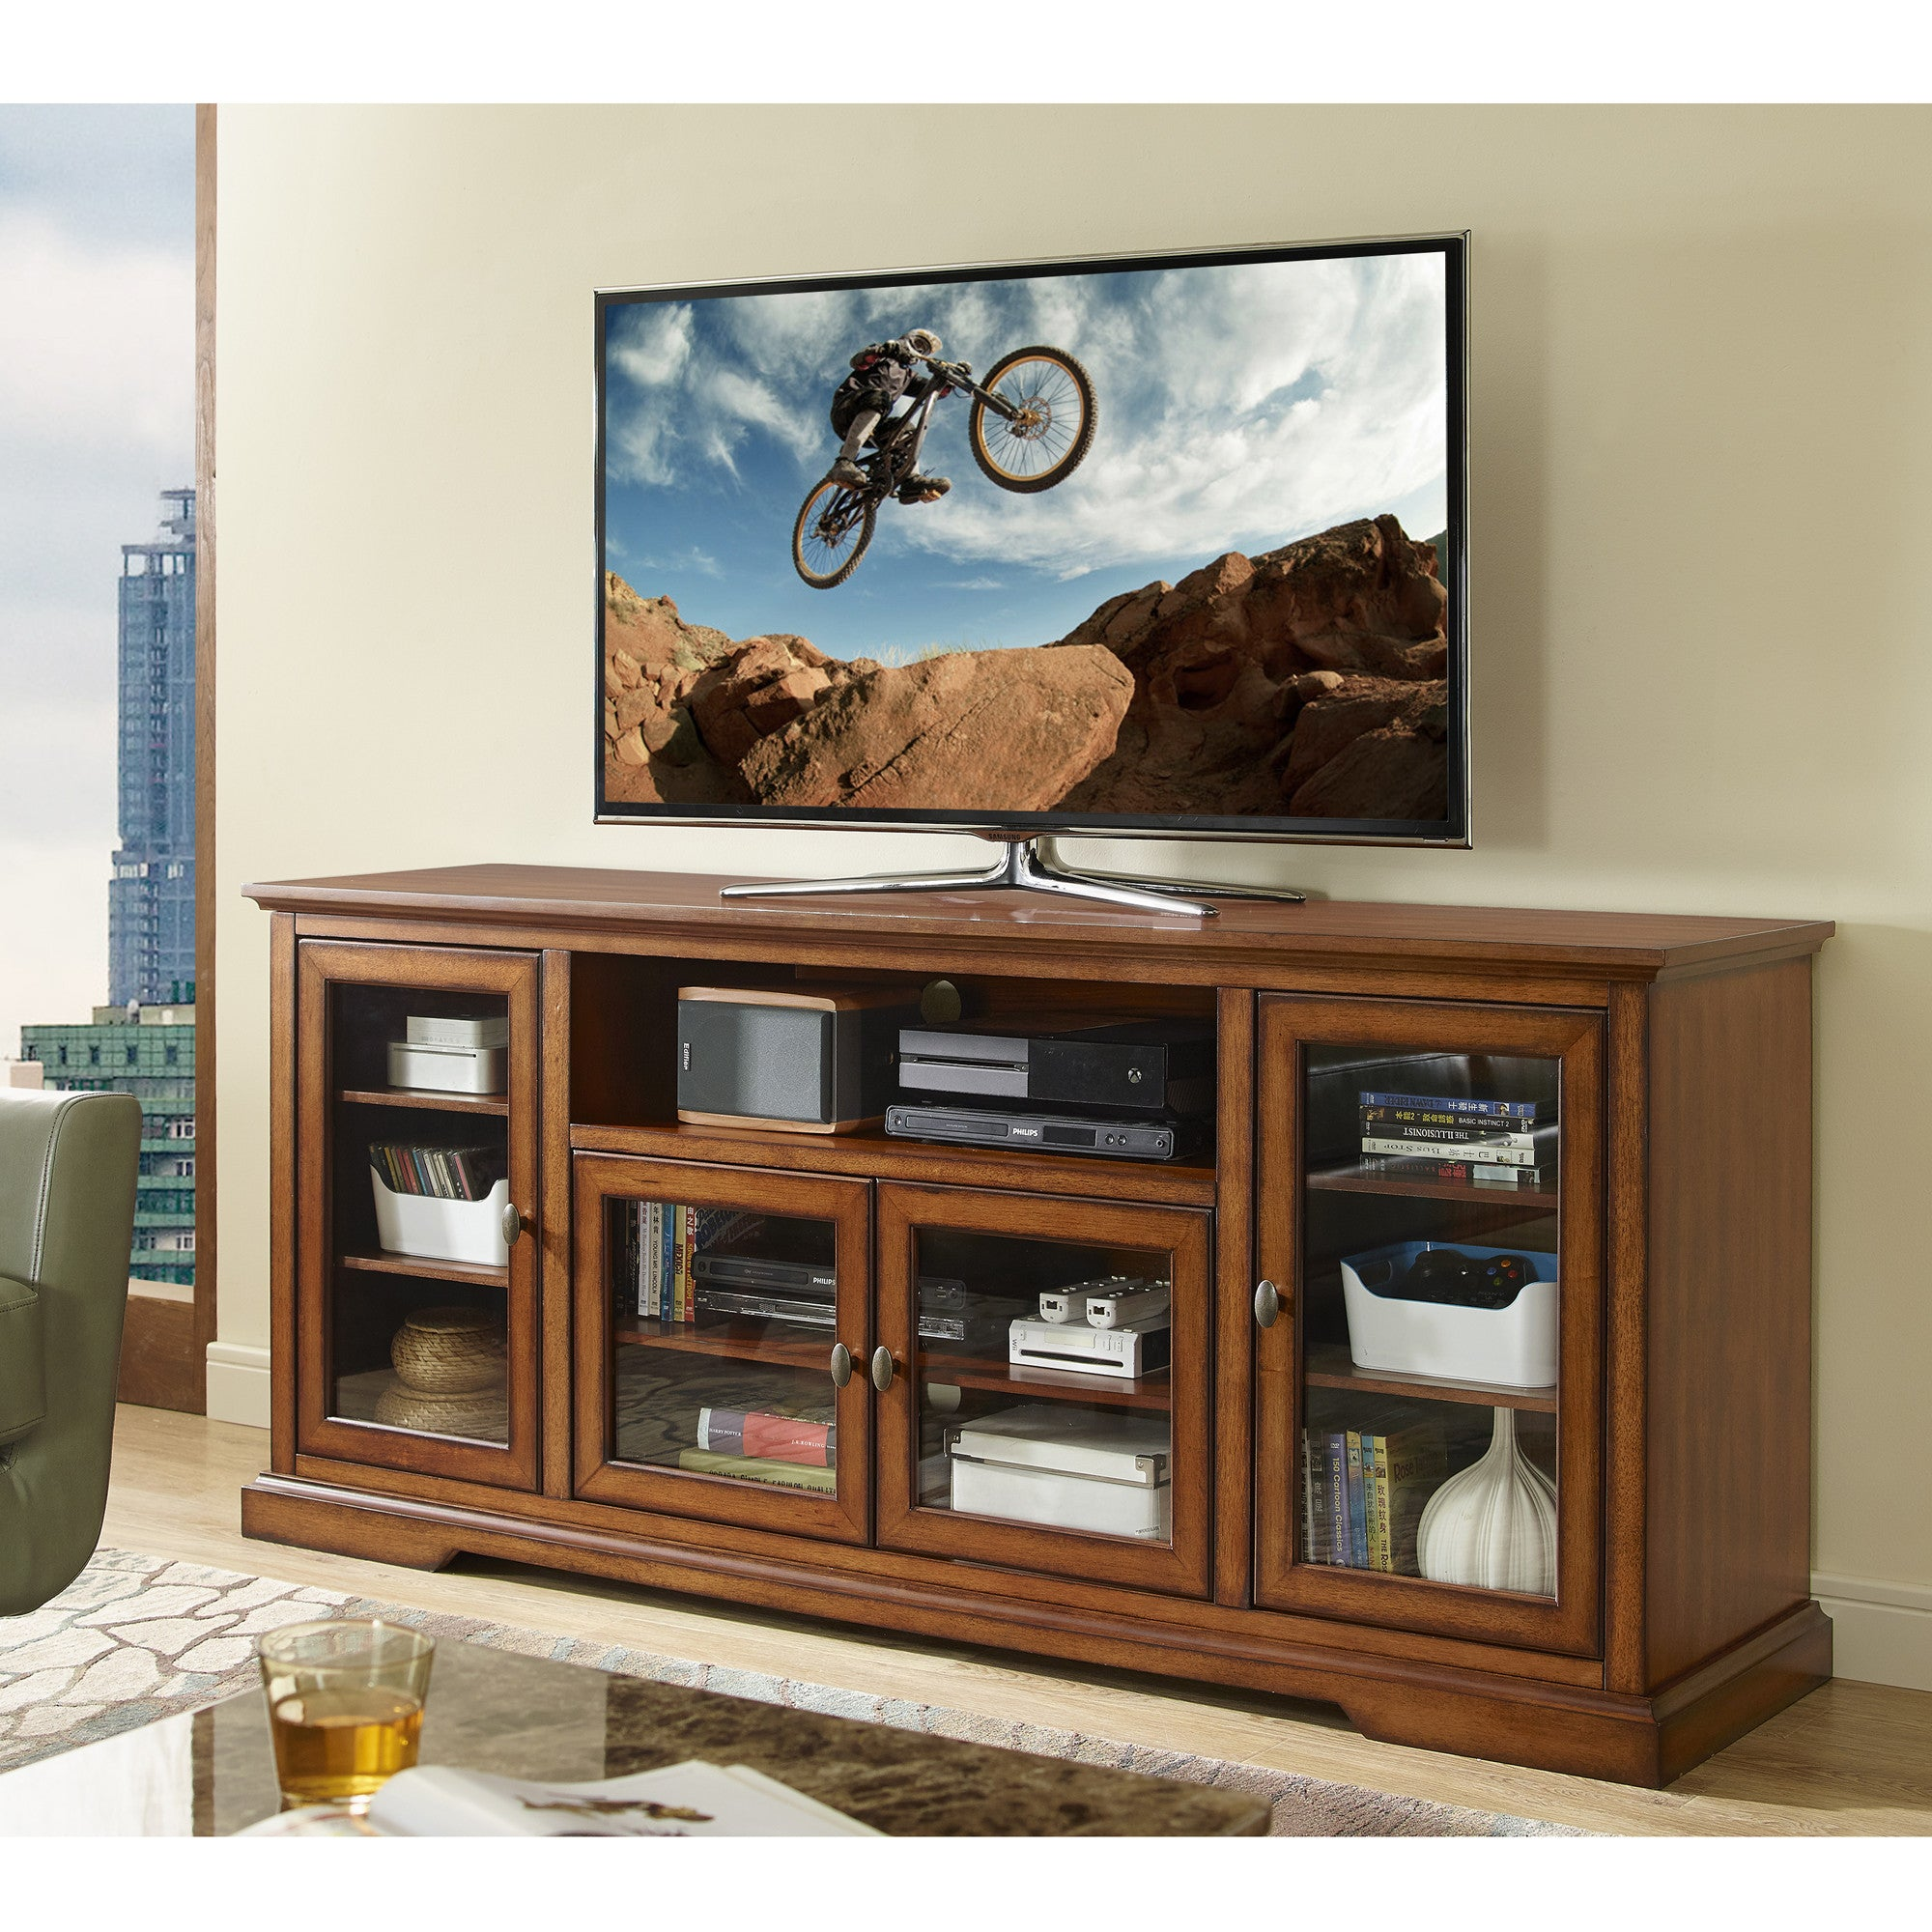 Contemporary Rustic Brown Extra Tall TV Stand Console with Glass Doors